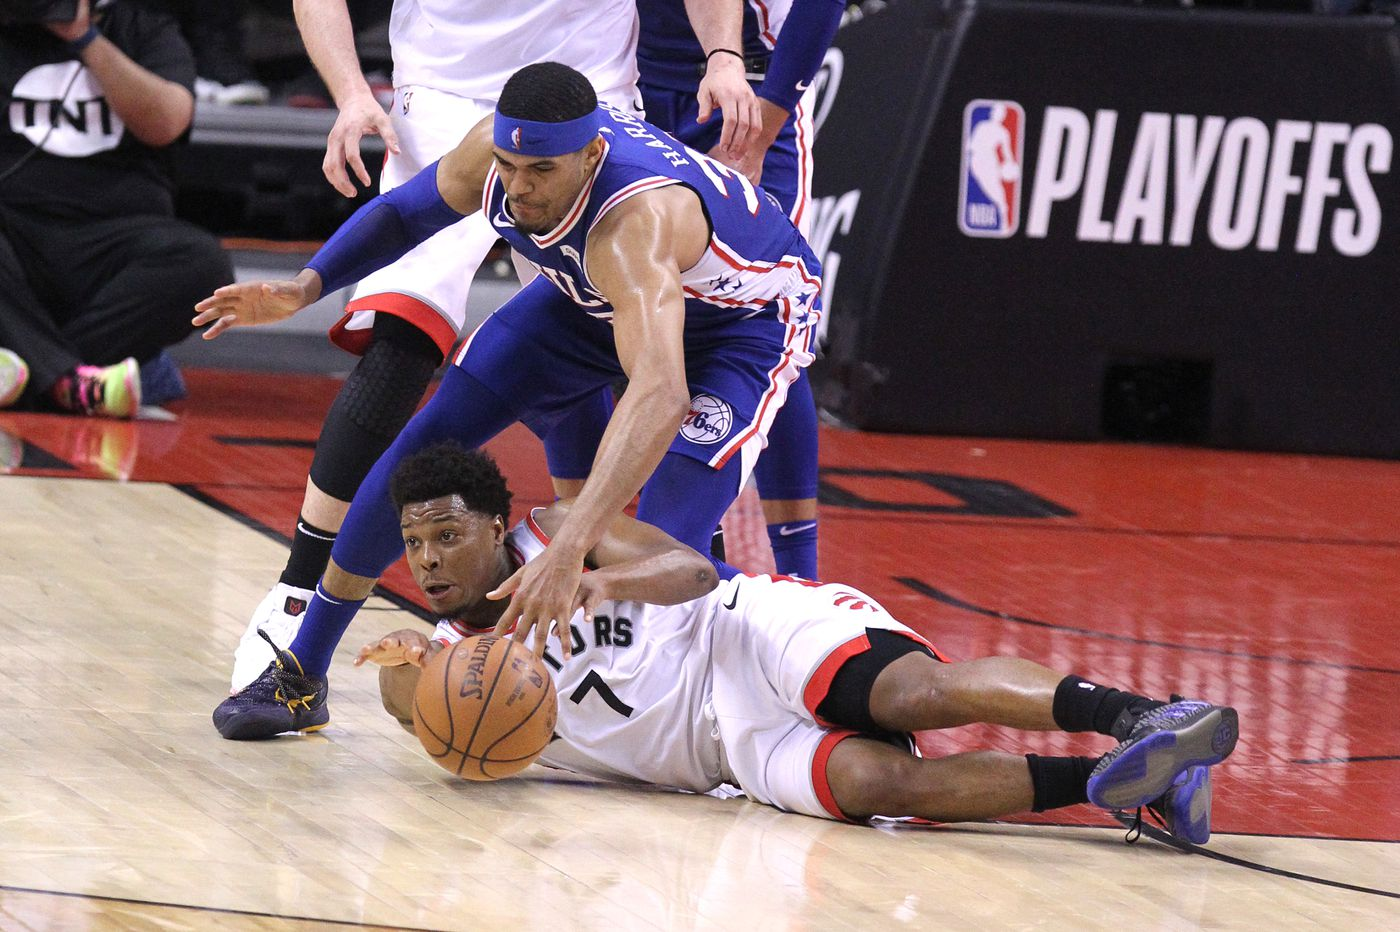 NBA playoffs: Kyle Lowry expects amped-up Philly crowd for Raptors